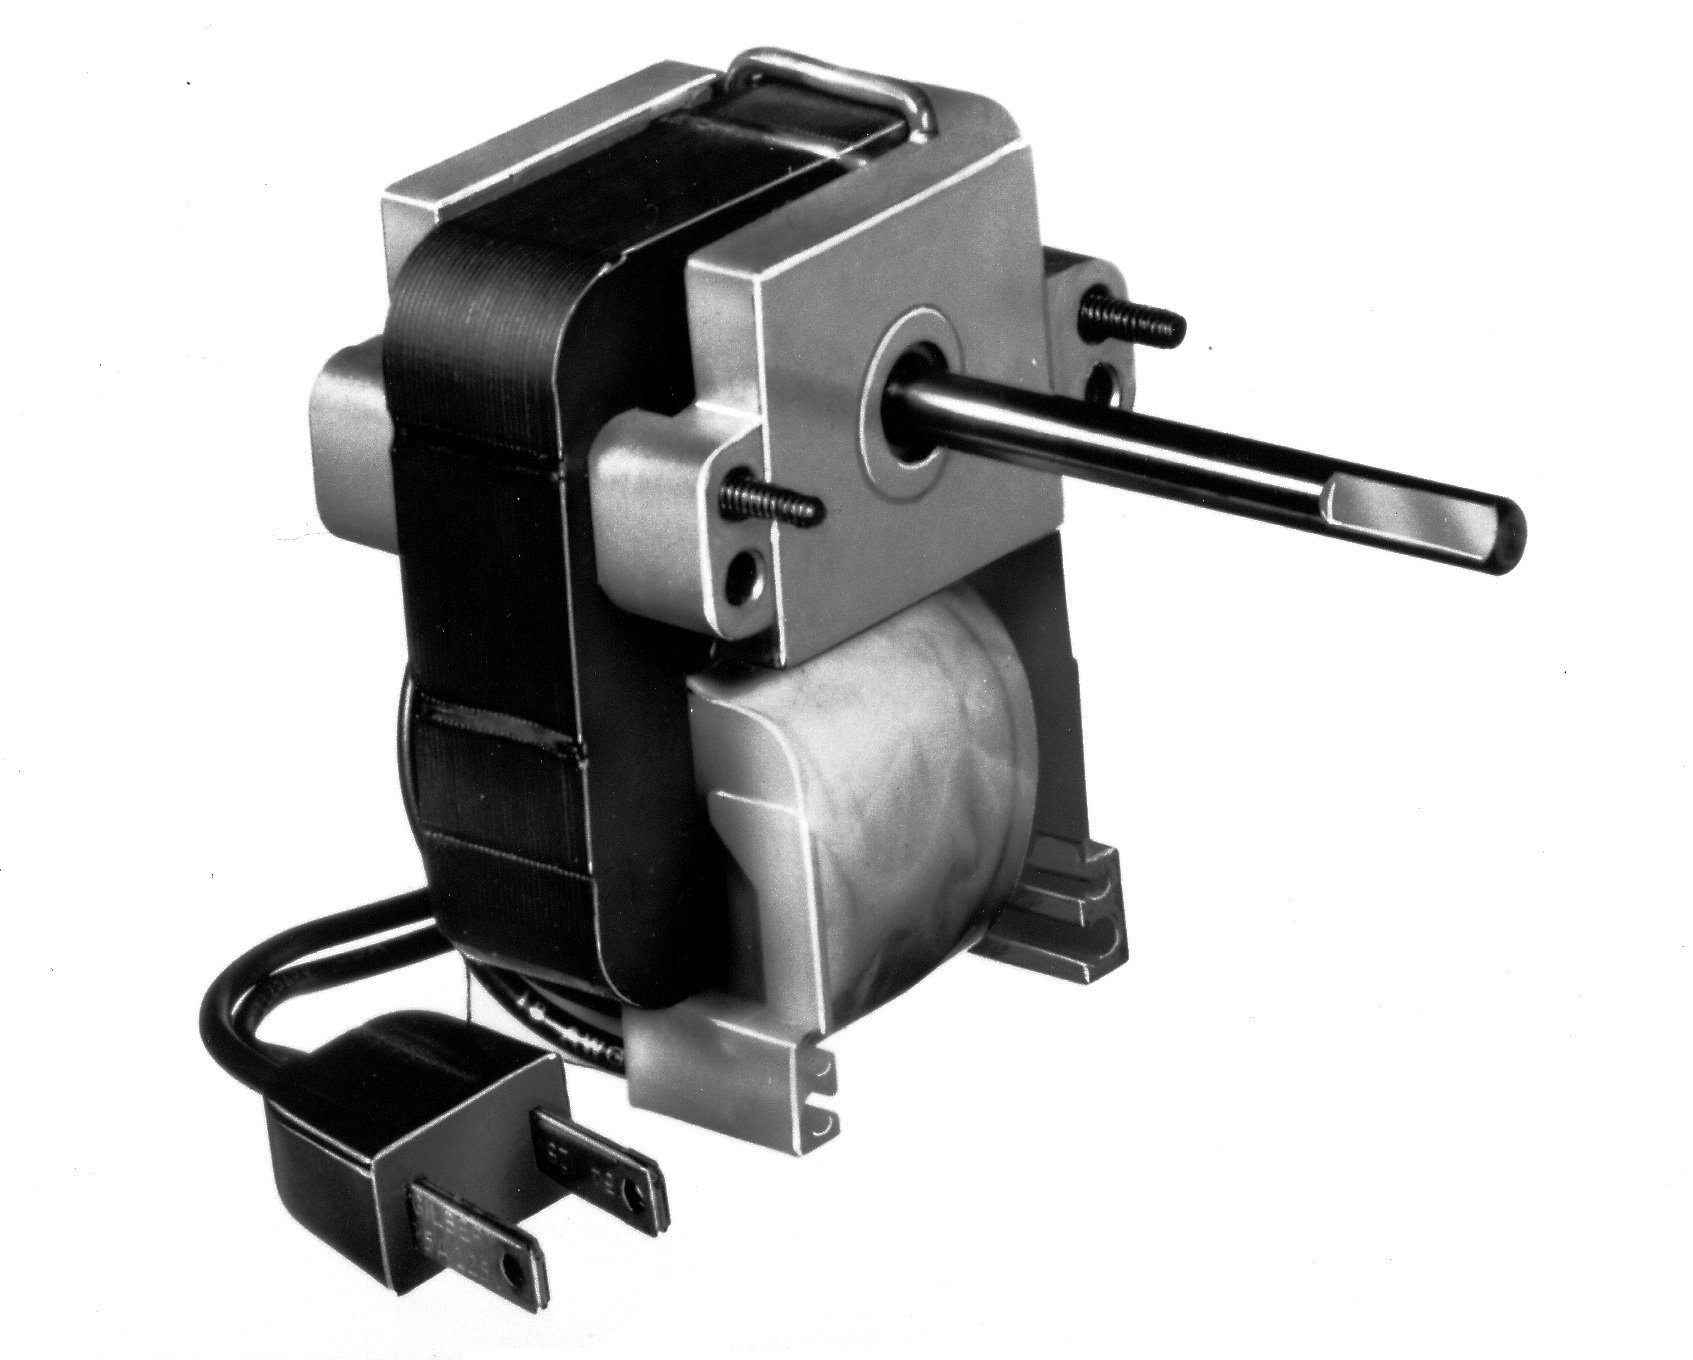 Fasco K611 C Frame Open K Line Shaded Pole OEM Replacement Electric Motor with Sleeve Bearing, 1/100HP, 3000rpm, 115VAC, 60Hz, 0.63 amps, For Vent Fan